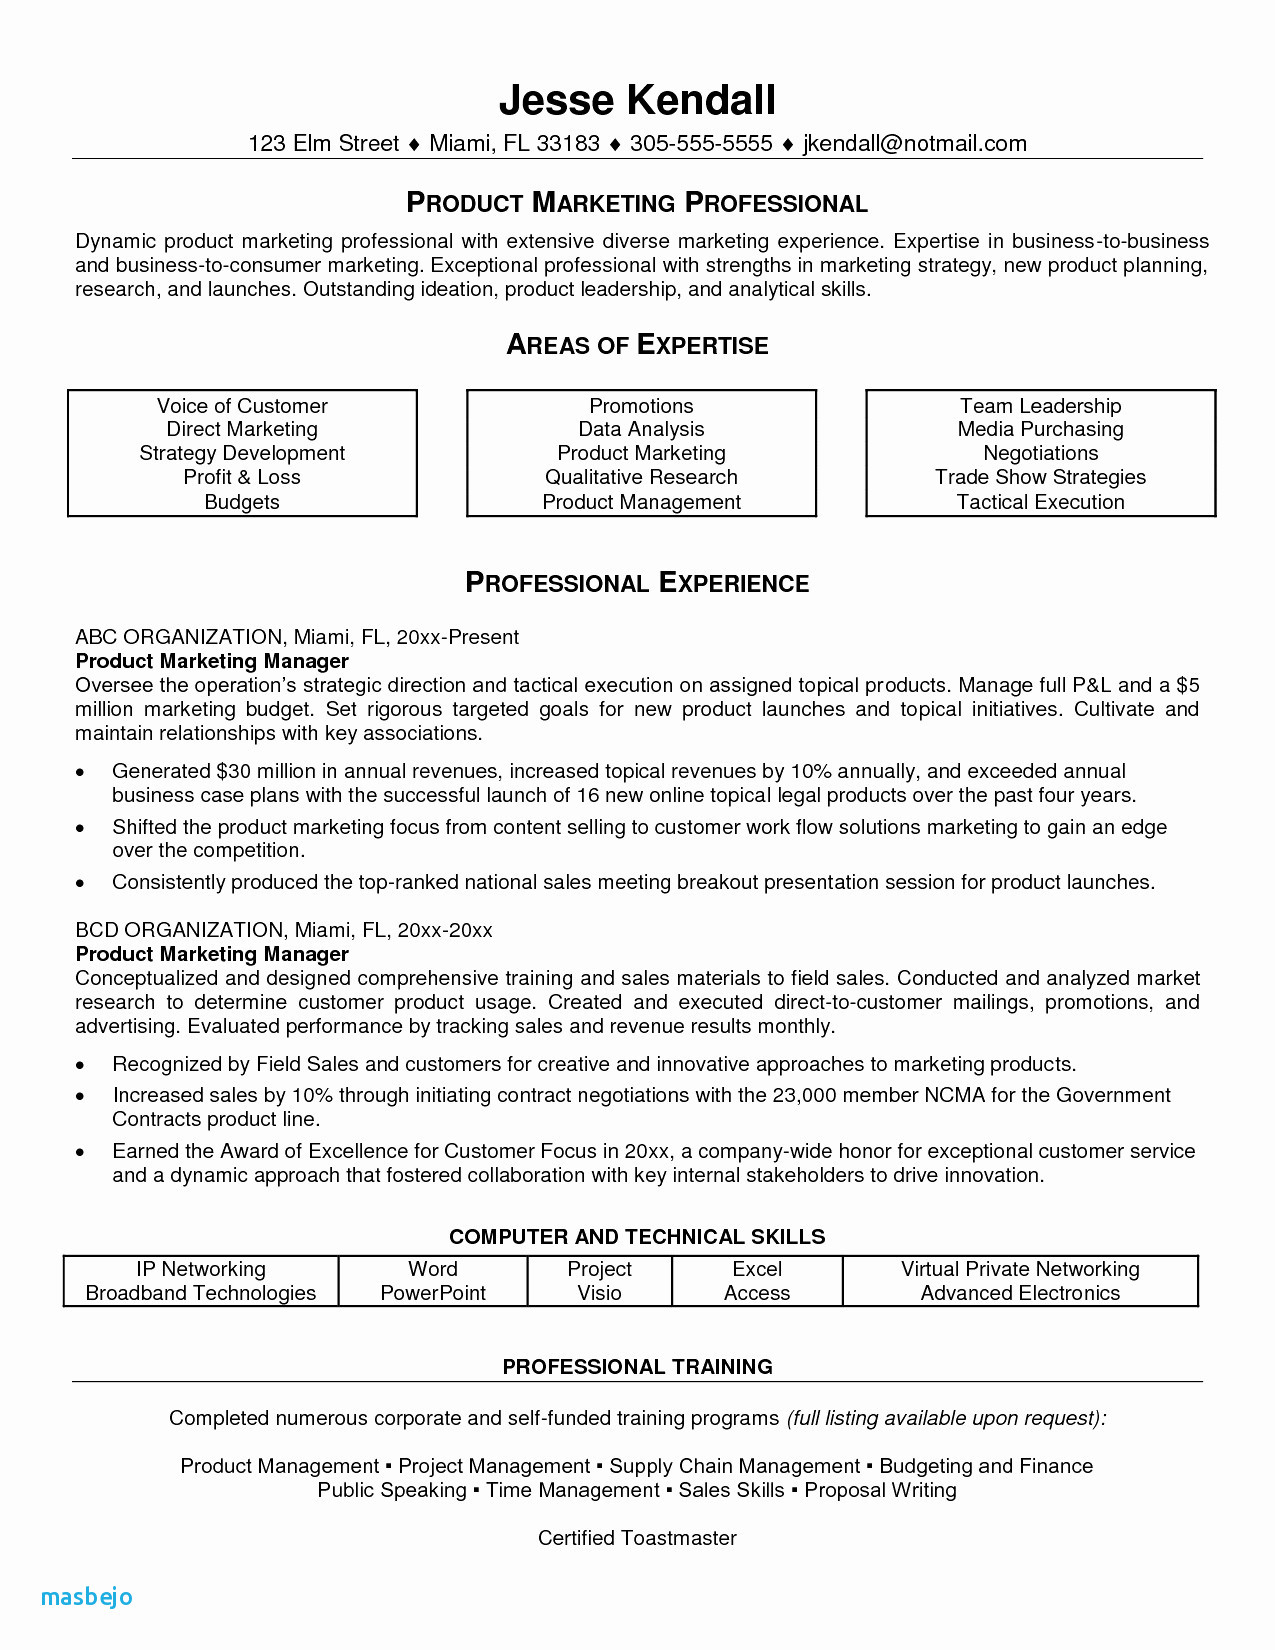 Paralegal Job Description Resume - Marketing Skills Resume Elegant Research Skills Resume New Paralegal